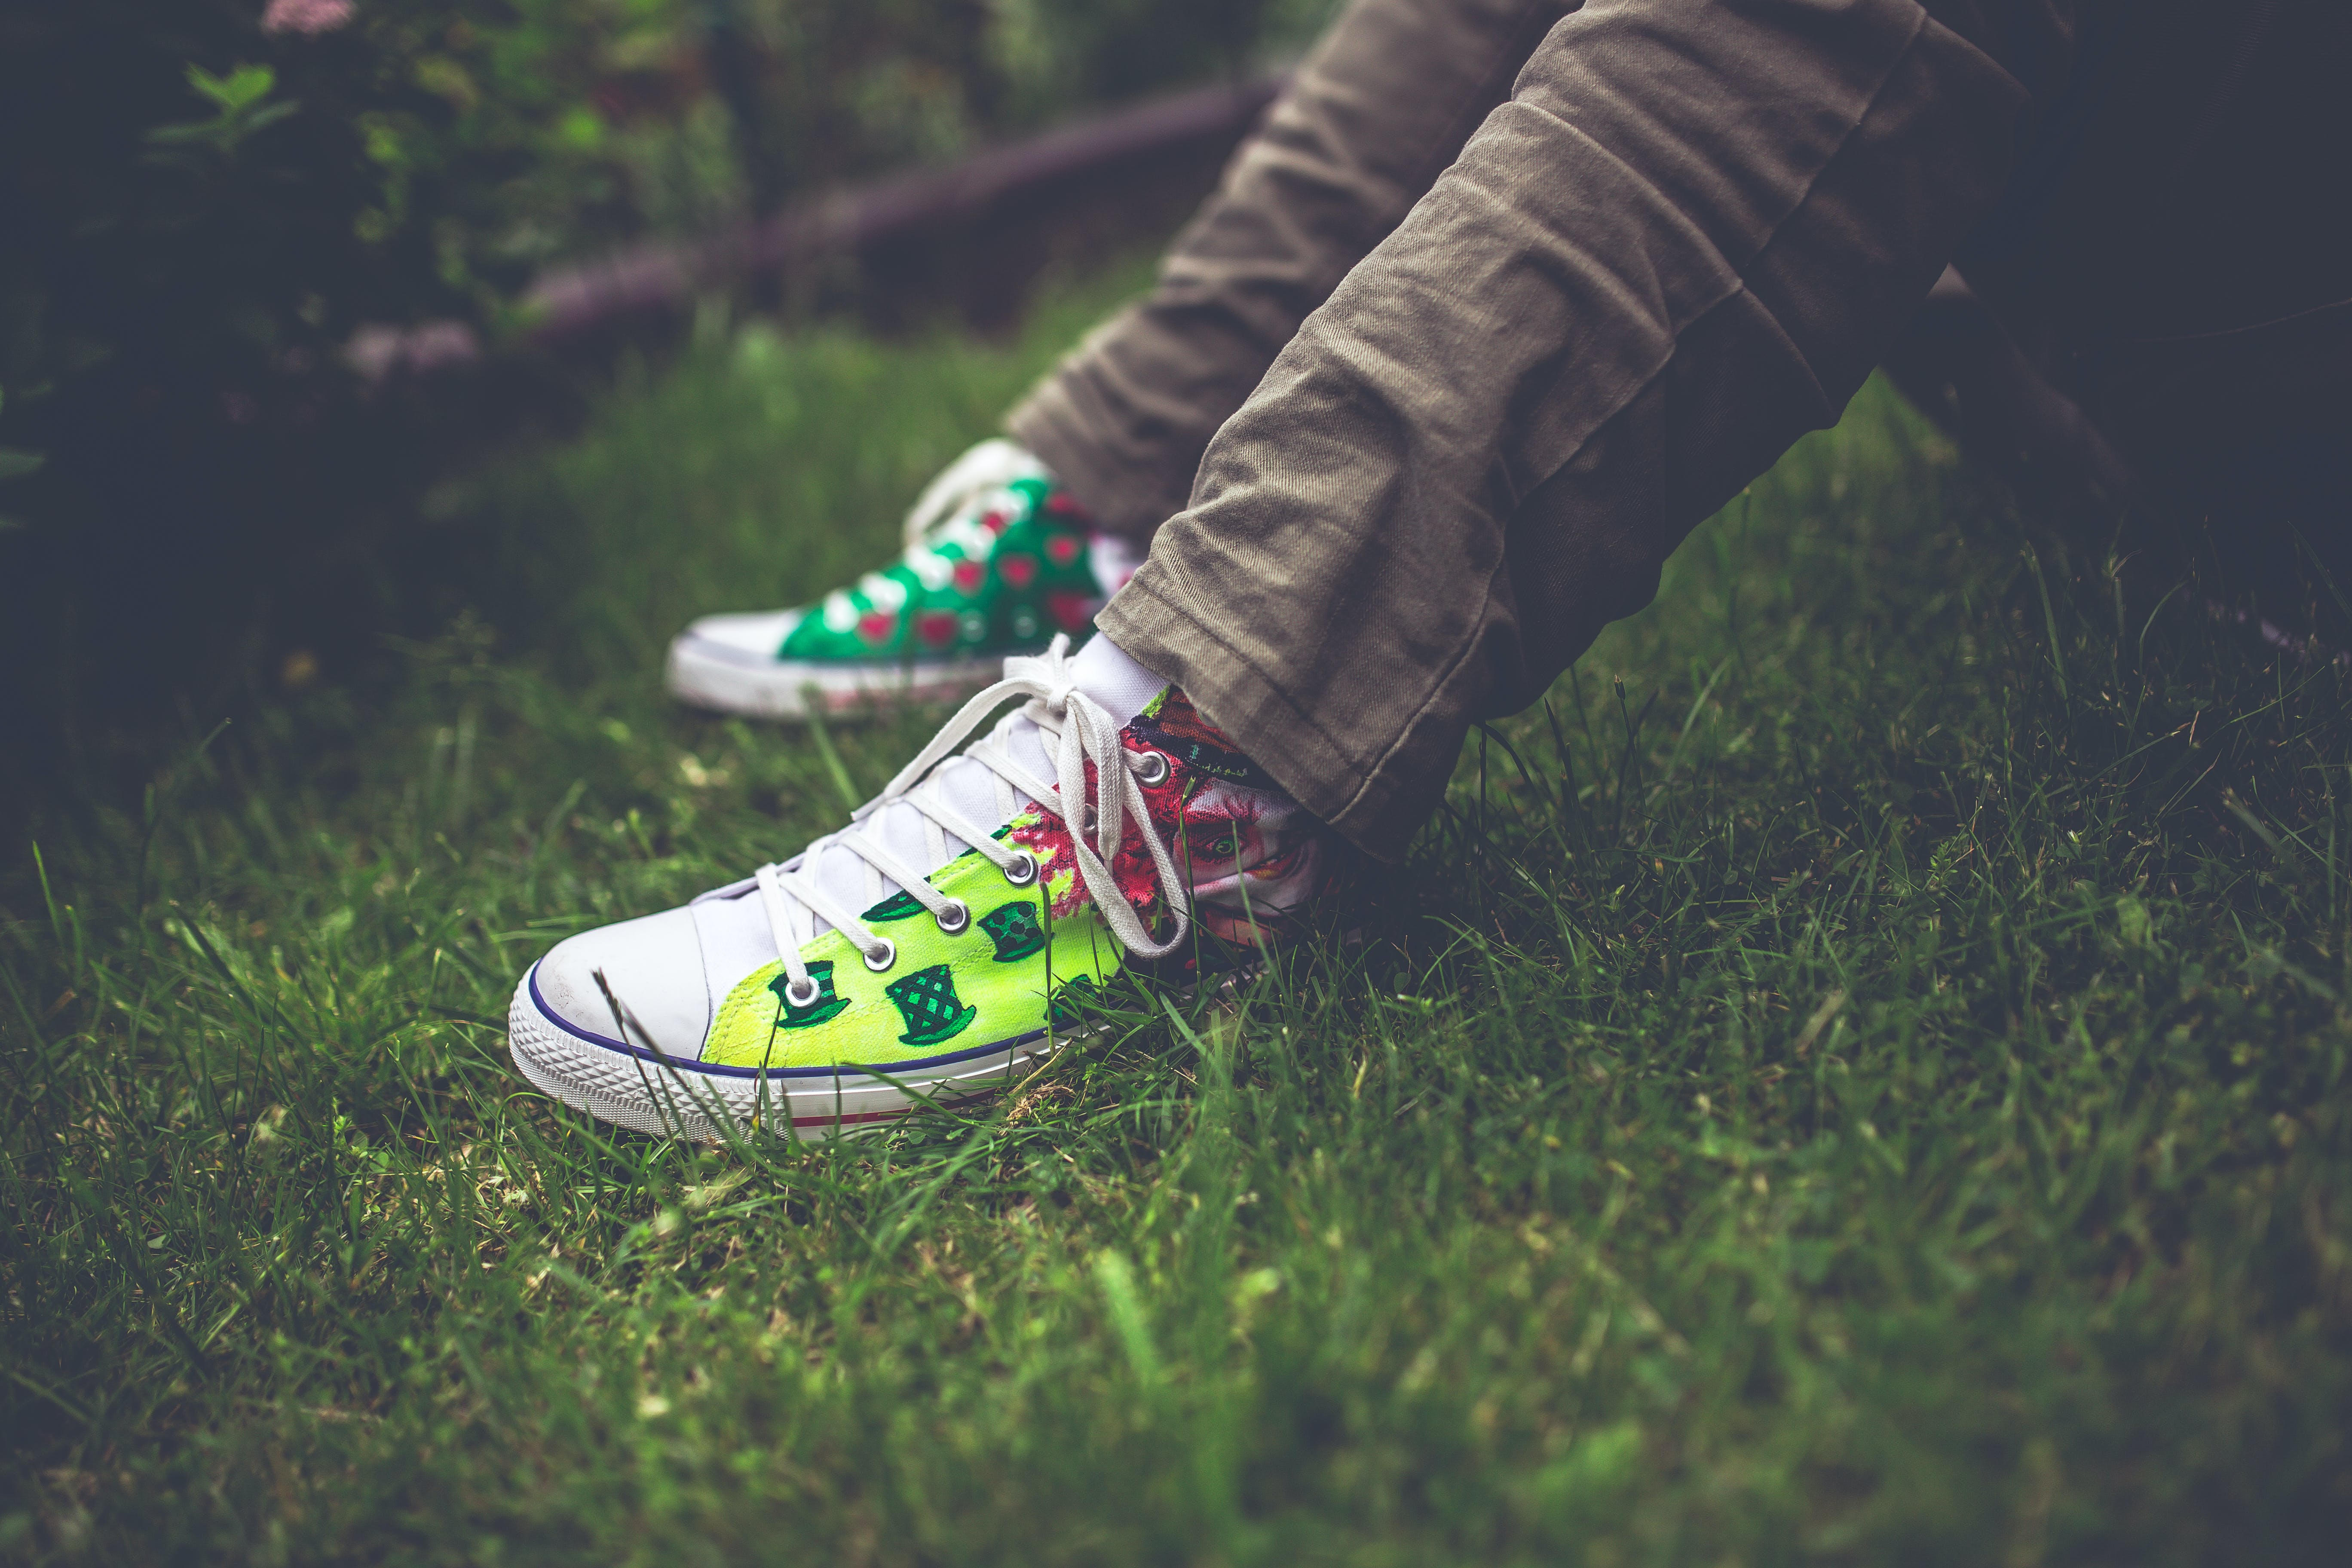 Free stock photo of garden, sitting, grass, shoes